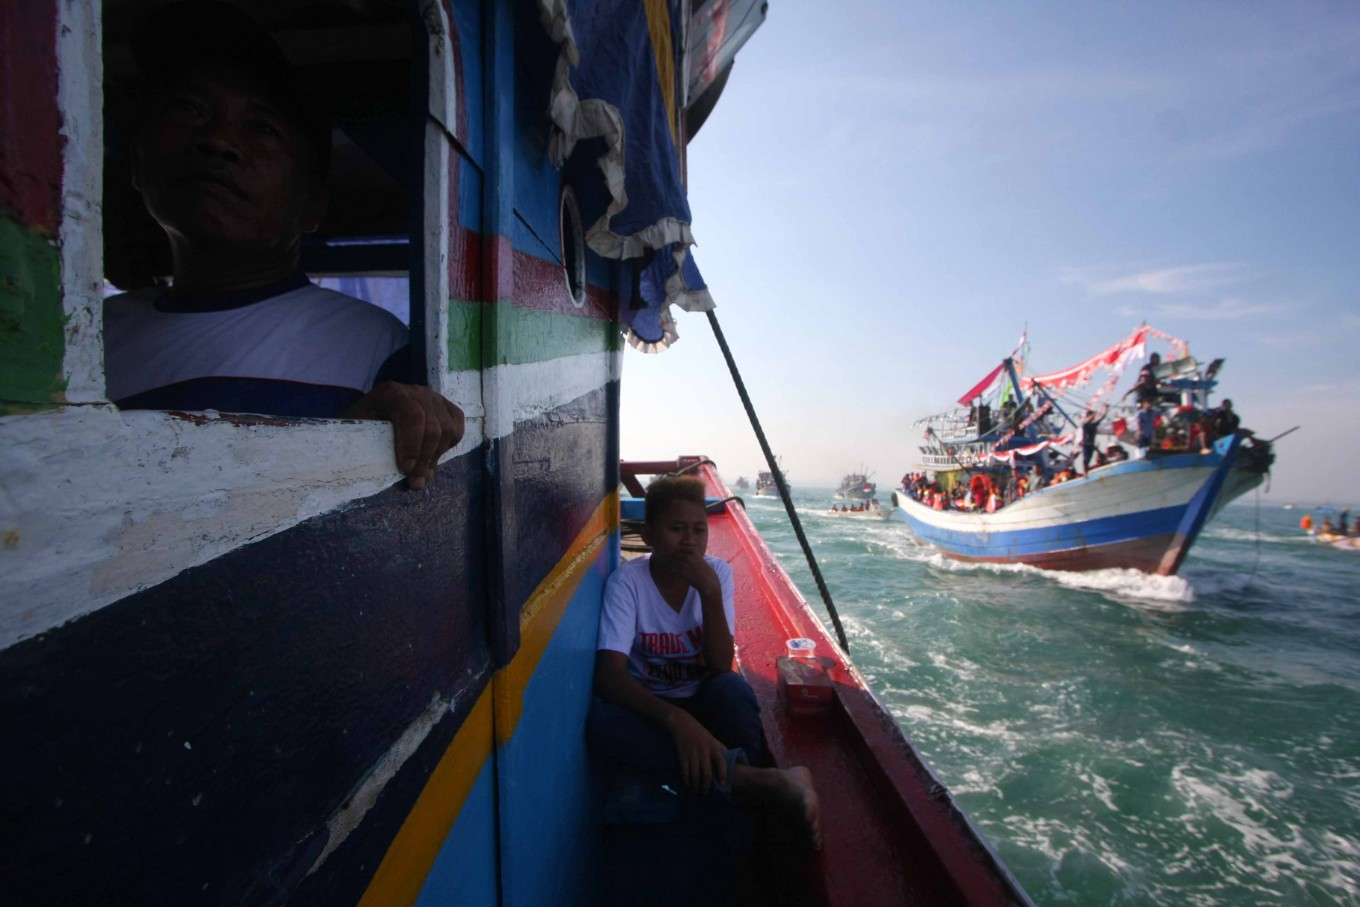 A skipper steers his boat into Jepara Bay in Central Java on July 2 while a young resident sits by the gunwale. JP/Maksum Nur Fauzan